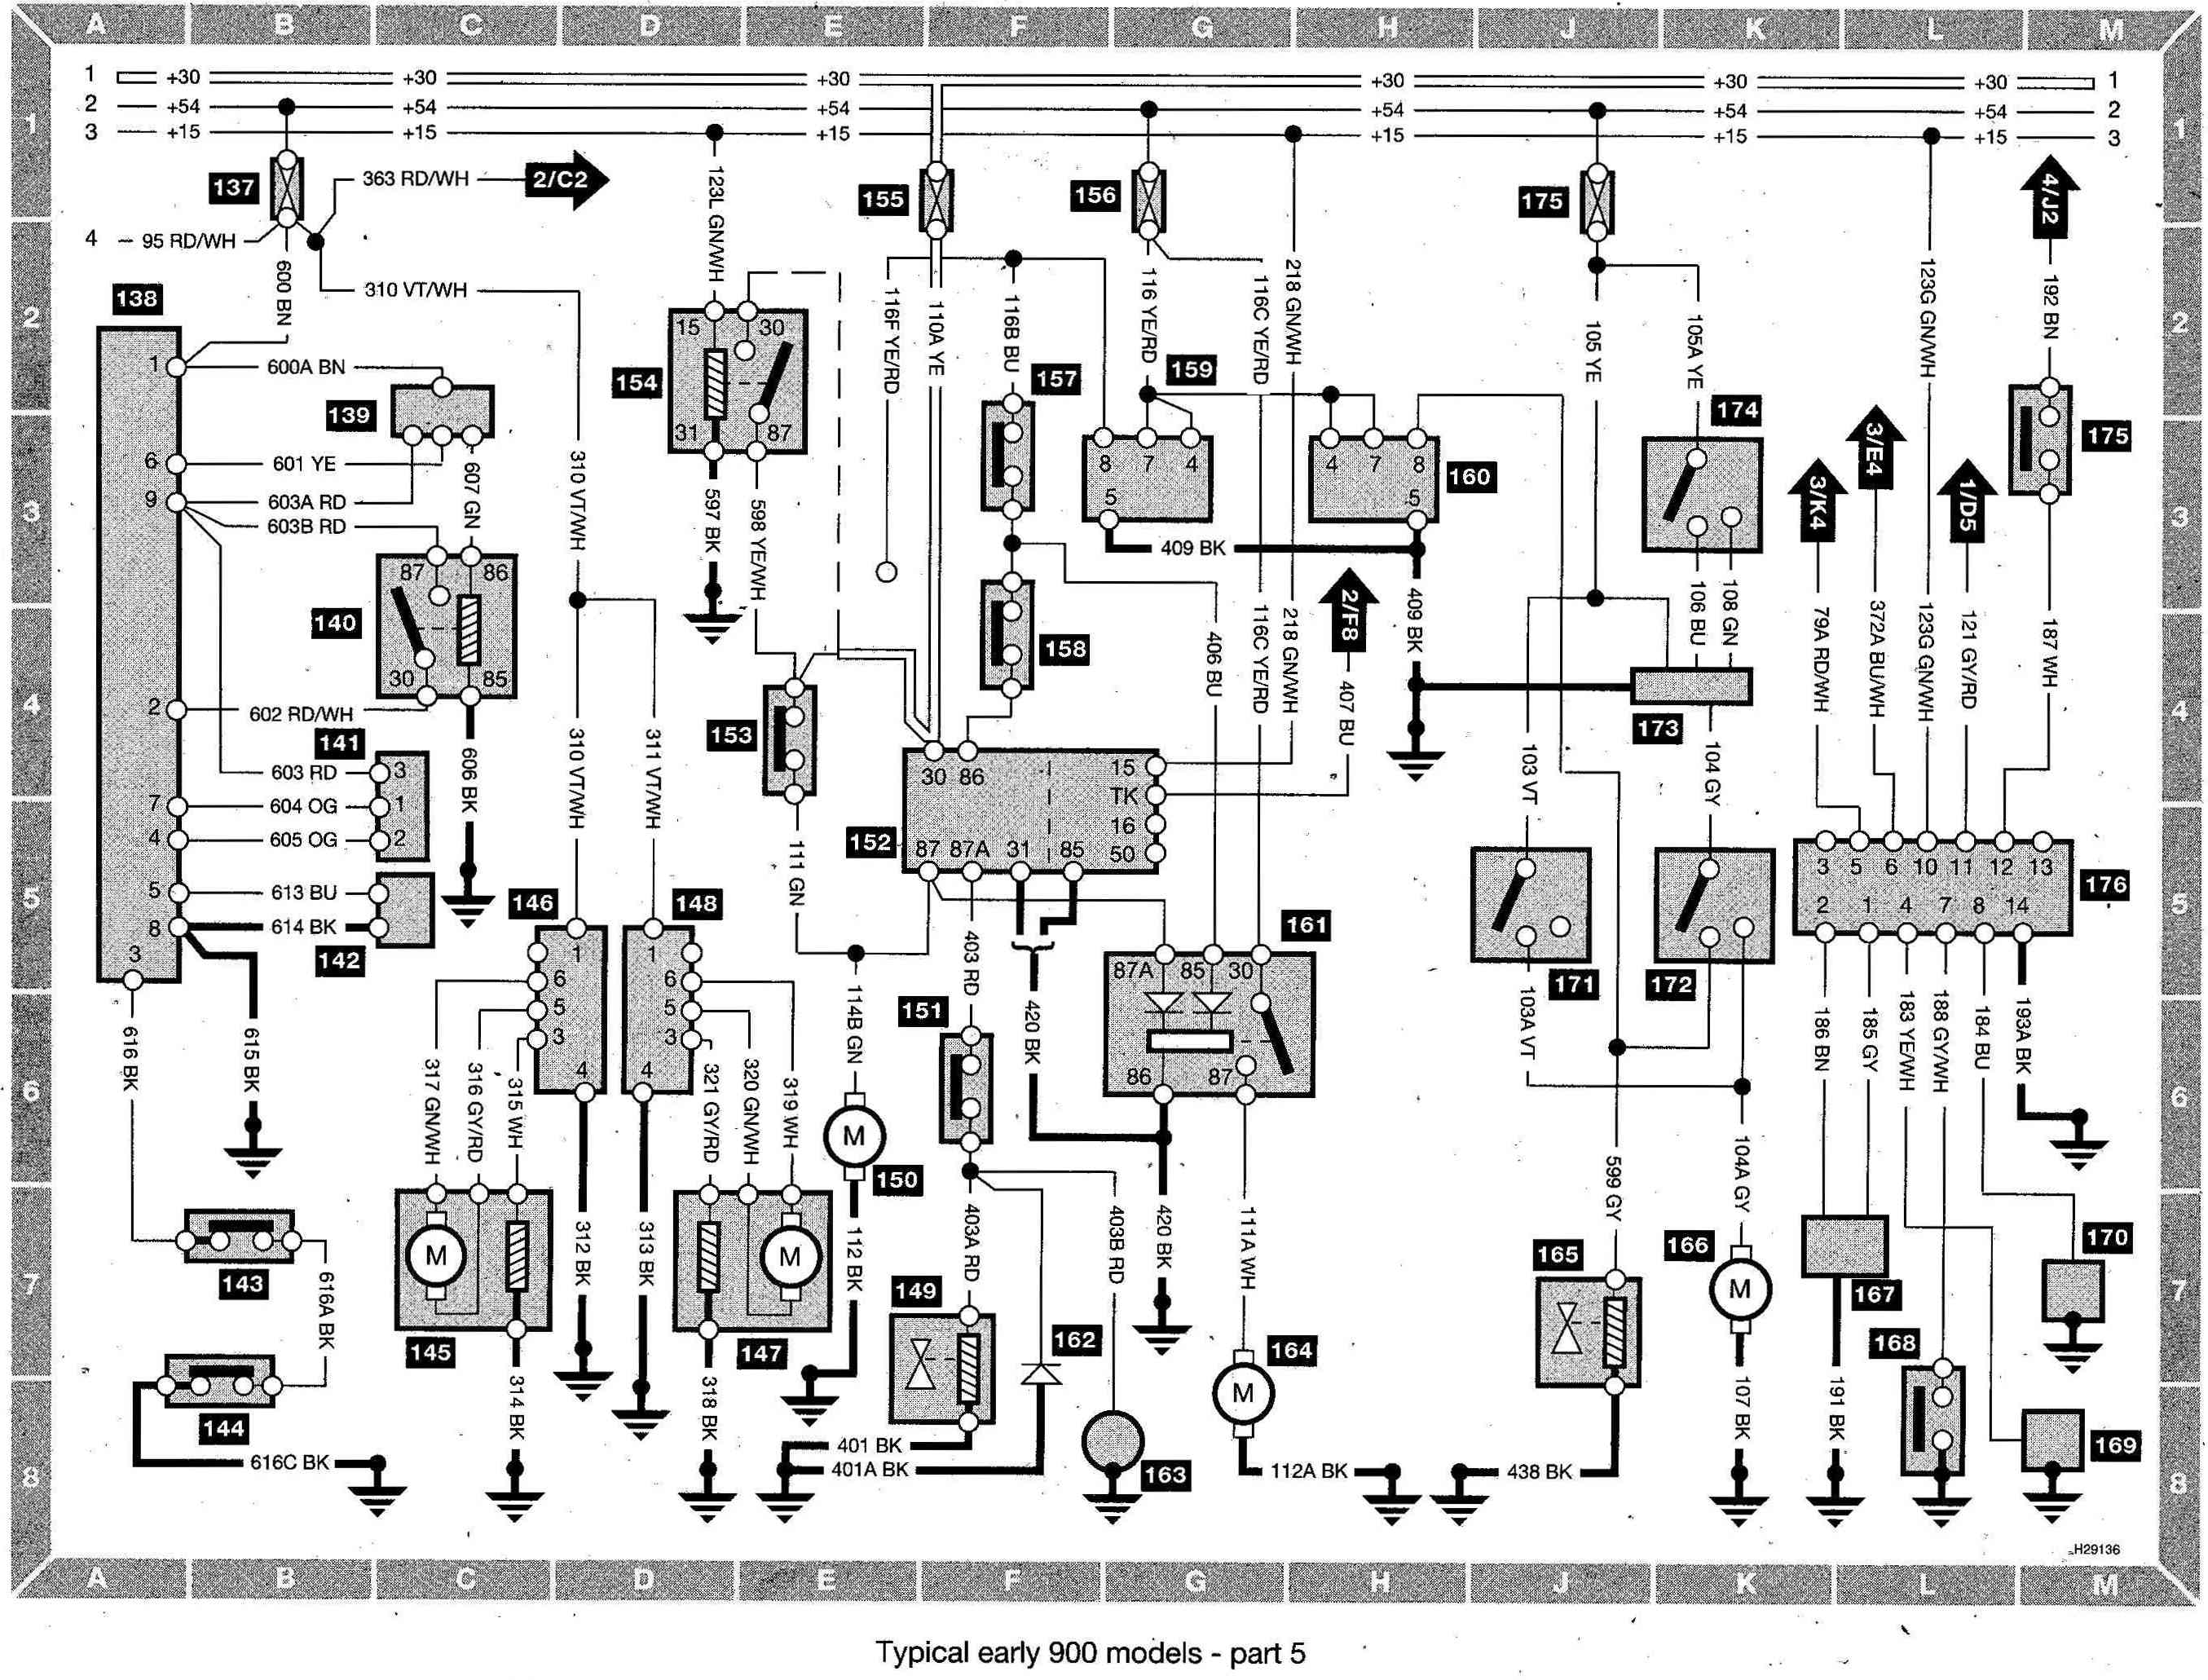 1993 saab wiring diagram index of /saab/saab 900 wiring diagram (early models) saab wiring diagram